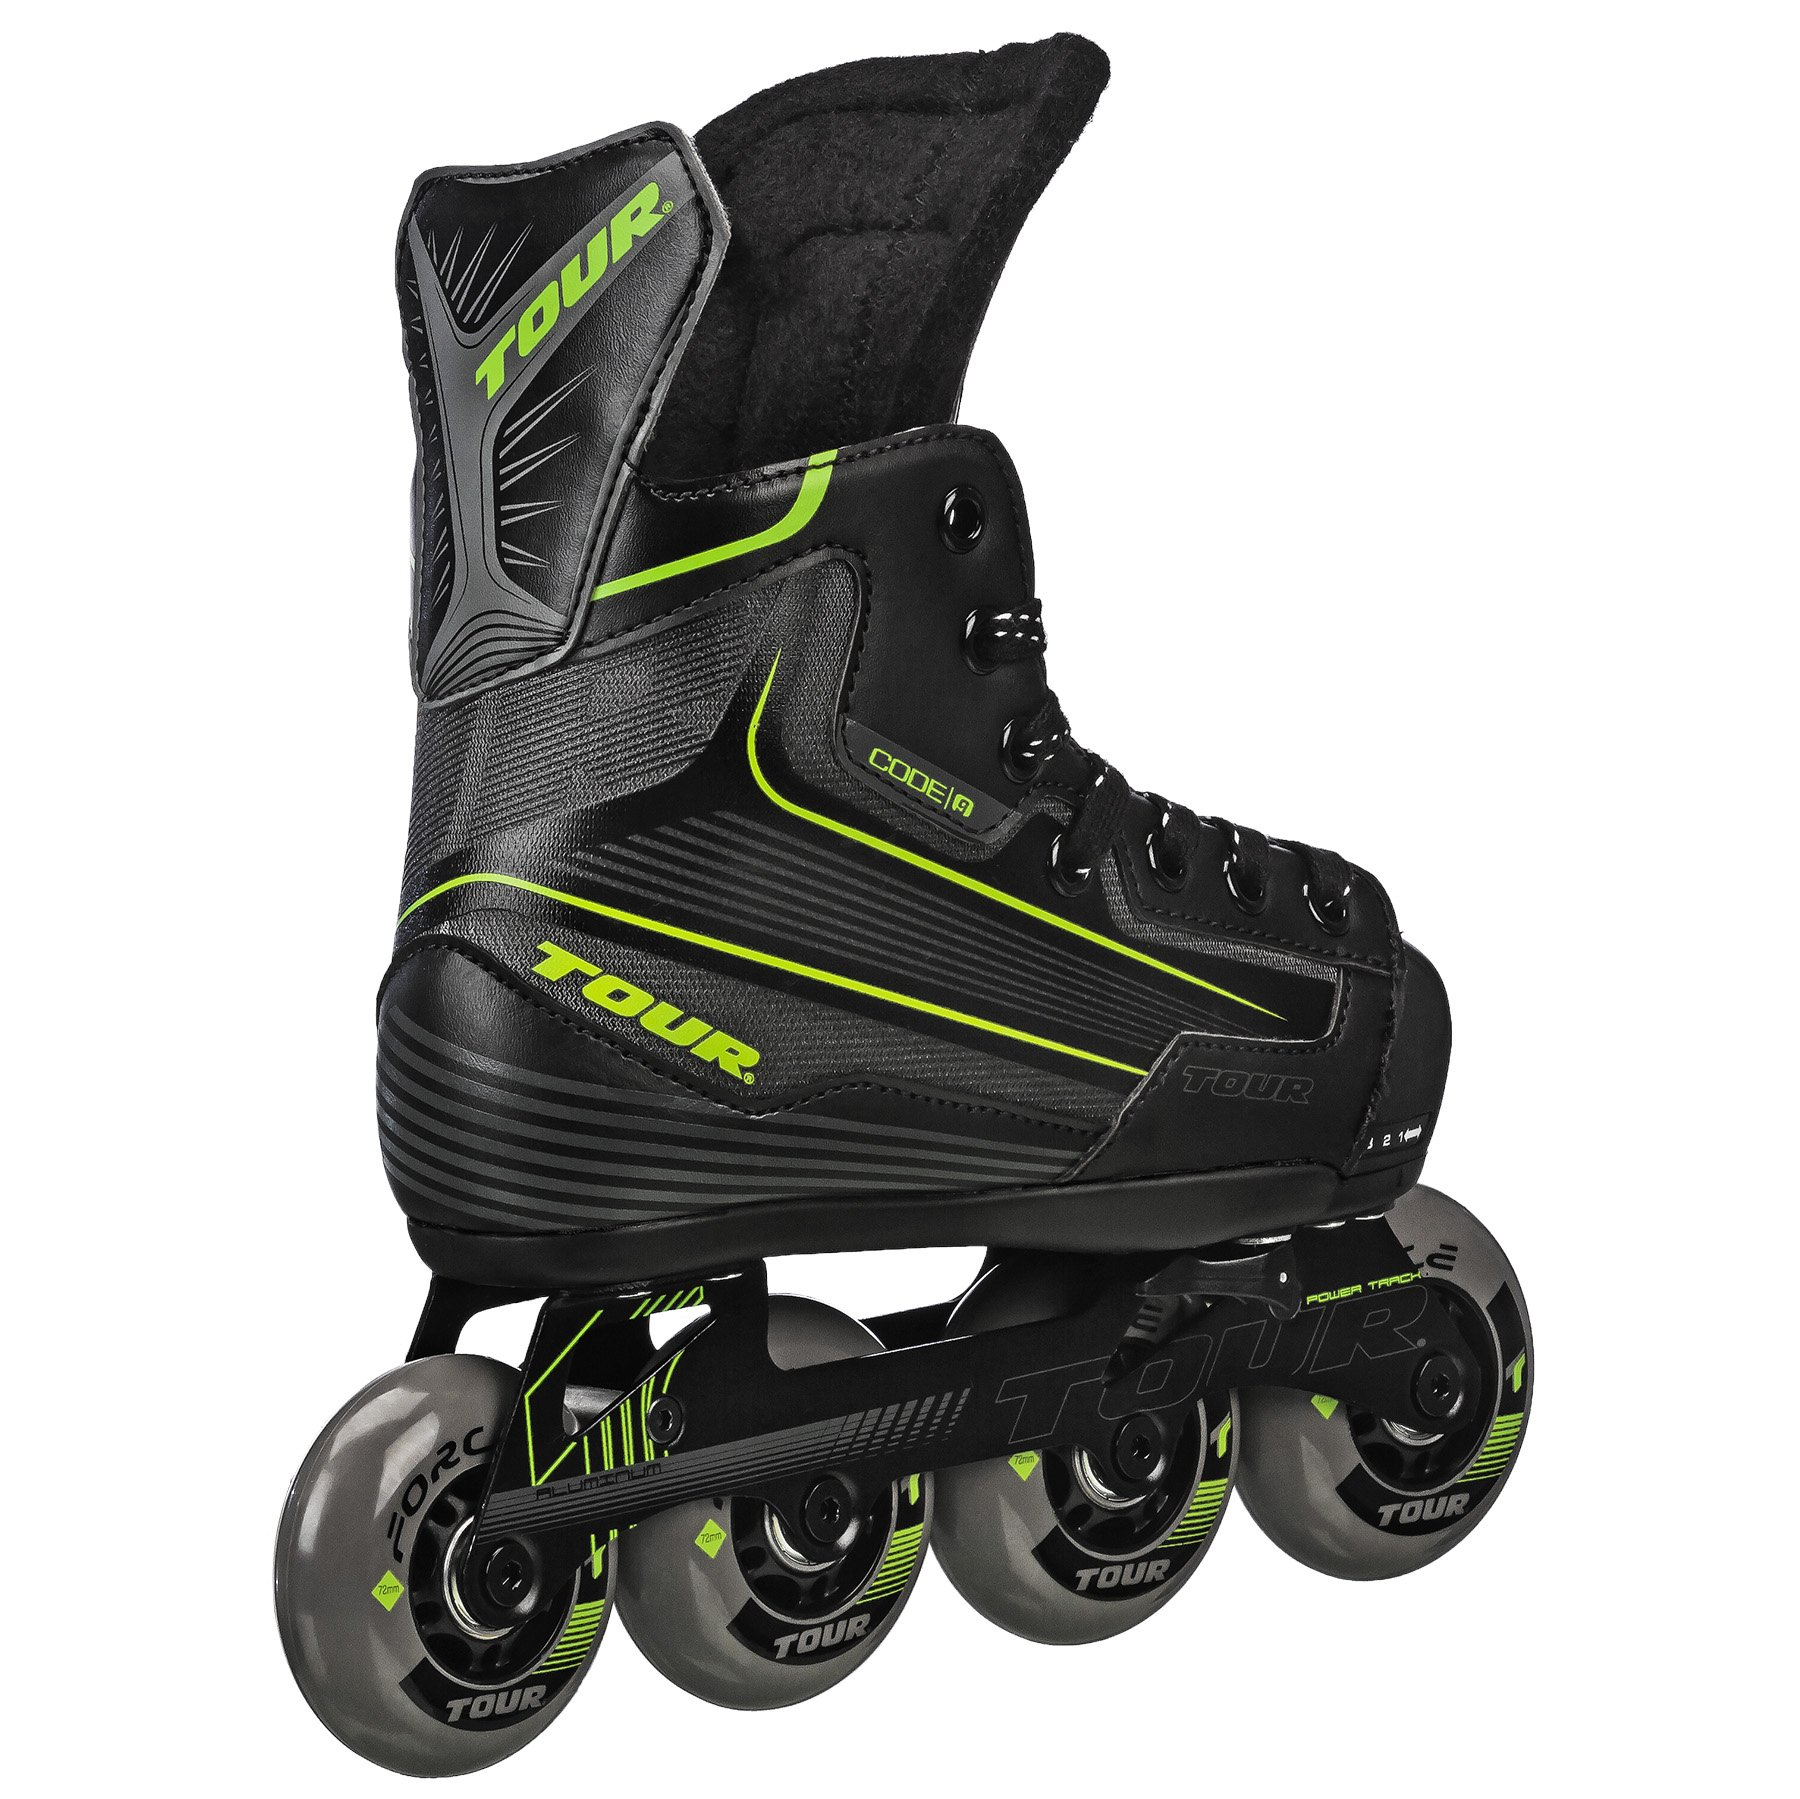 Tour Hockey Adjustable Inline Medium